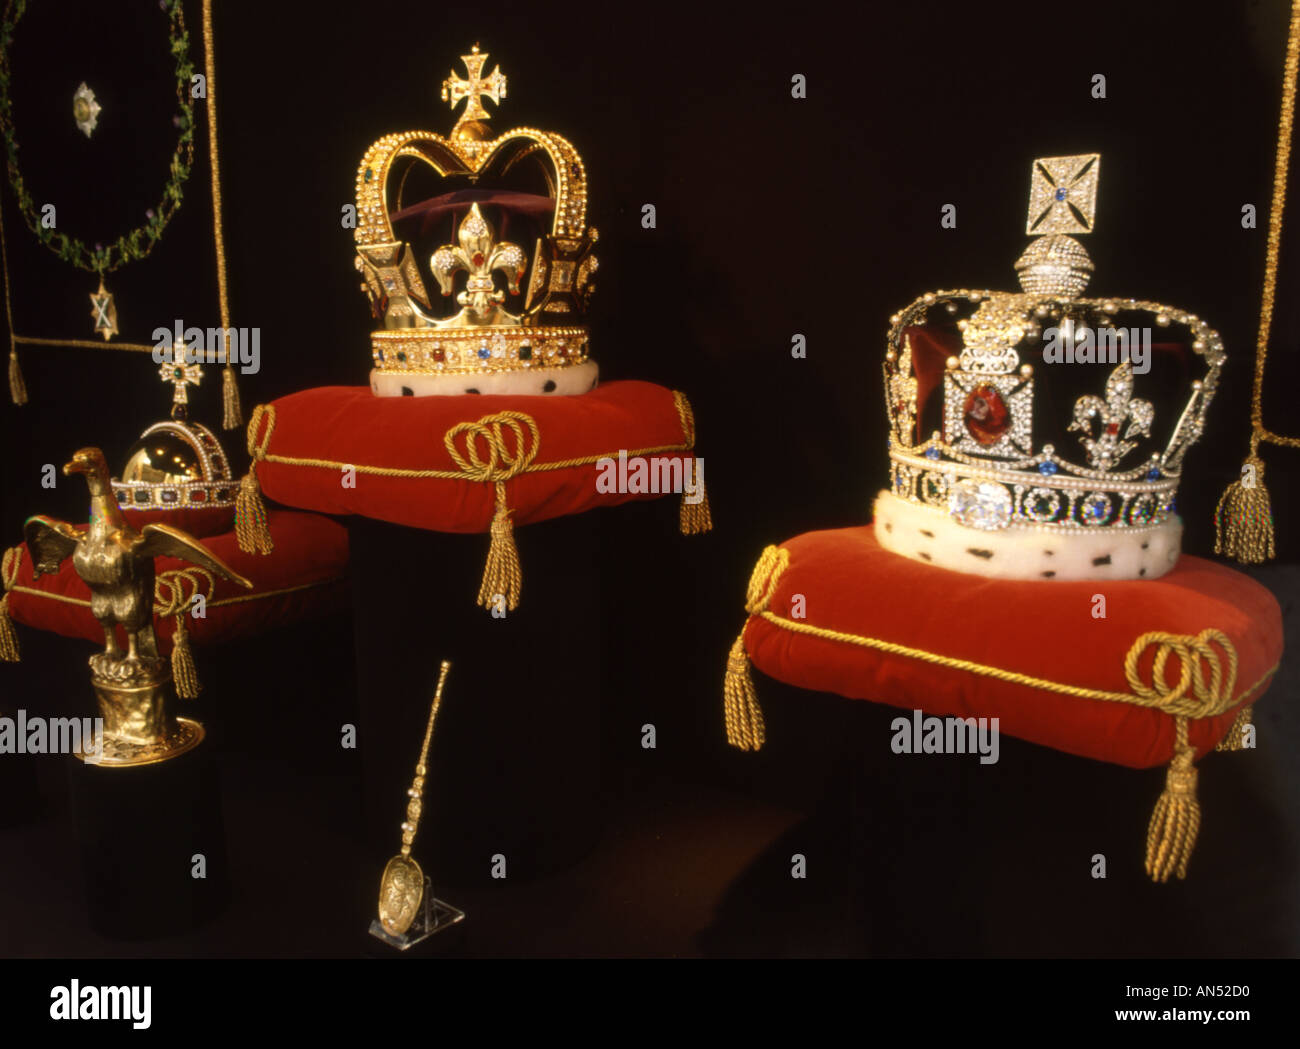 England Crown jewels - Stock Image